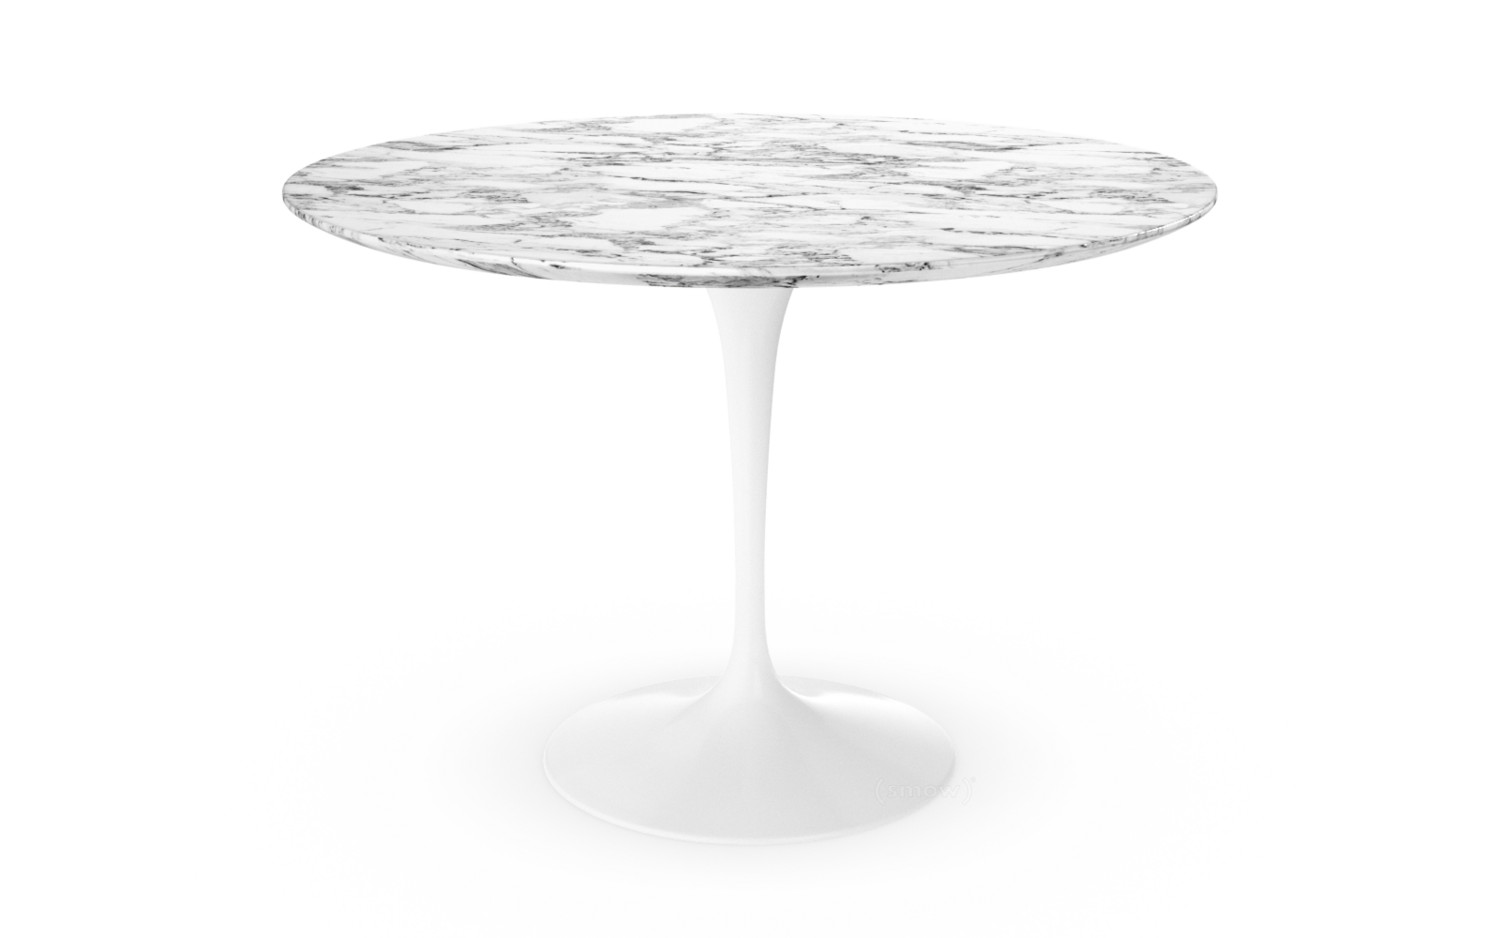 Saarinen Round Dining Table 107 Cm White Arabeo Marble With Grey Tones